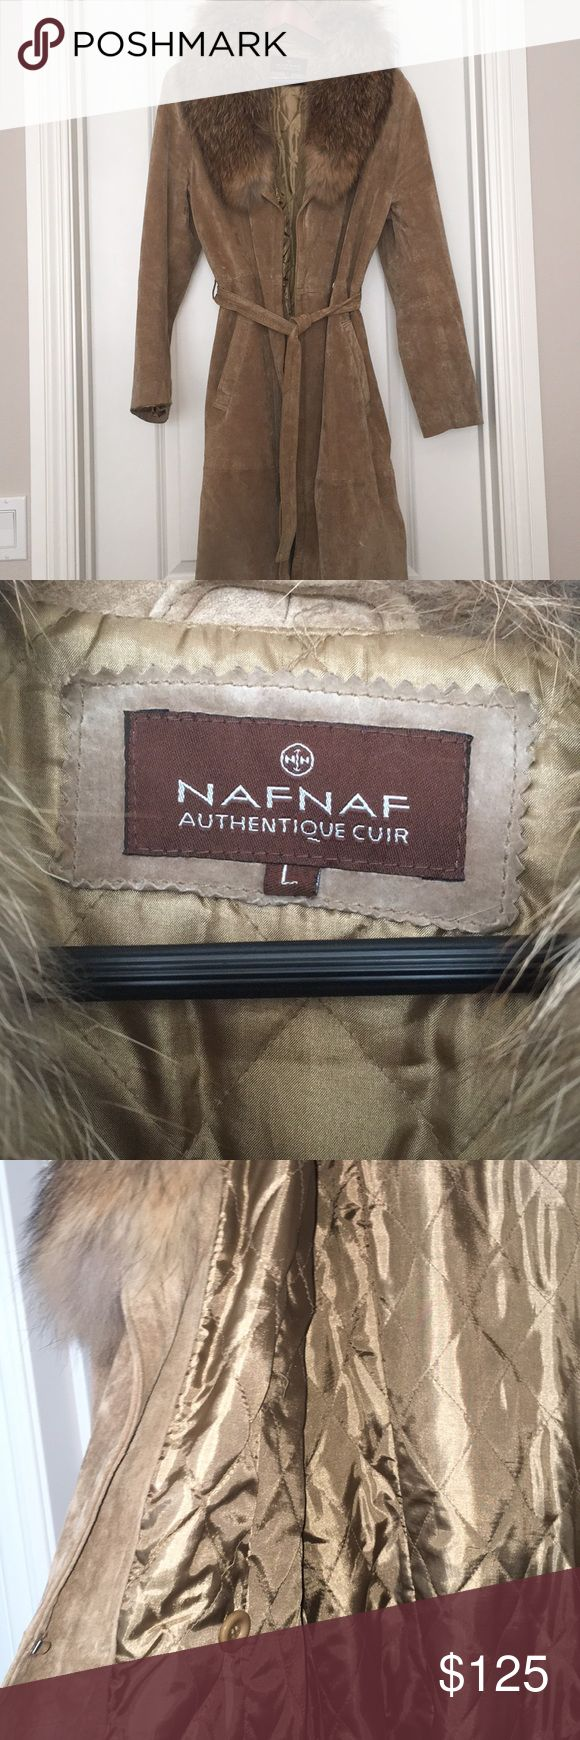 Naf Naf Suade Coat with fur Collar (From France) Naf Naf Paris - Suade Coat with fur collar, purchased from Paris, France, extremely stylish, high quality, excellent condition 🇫🇷 NAF NAF Jackets & Coats